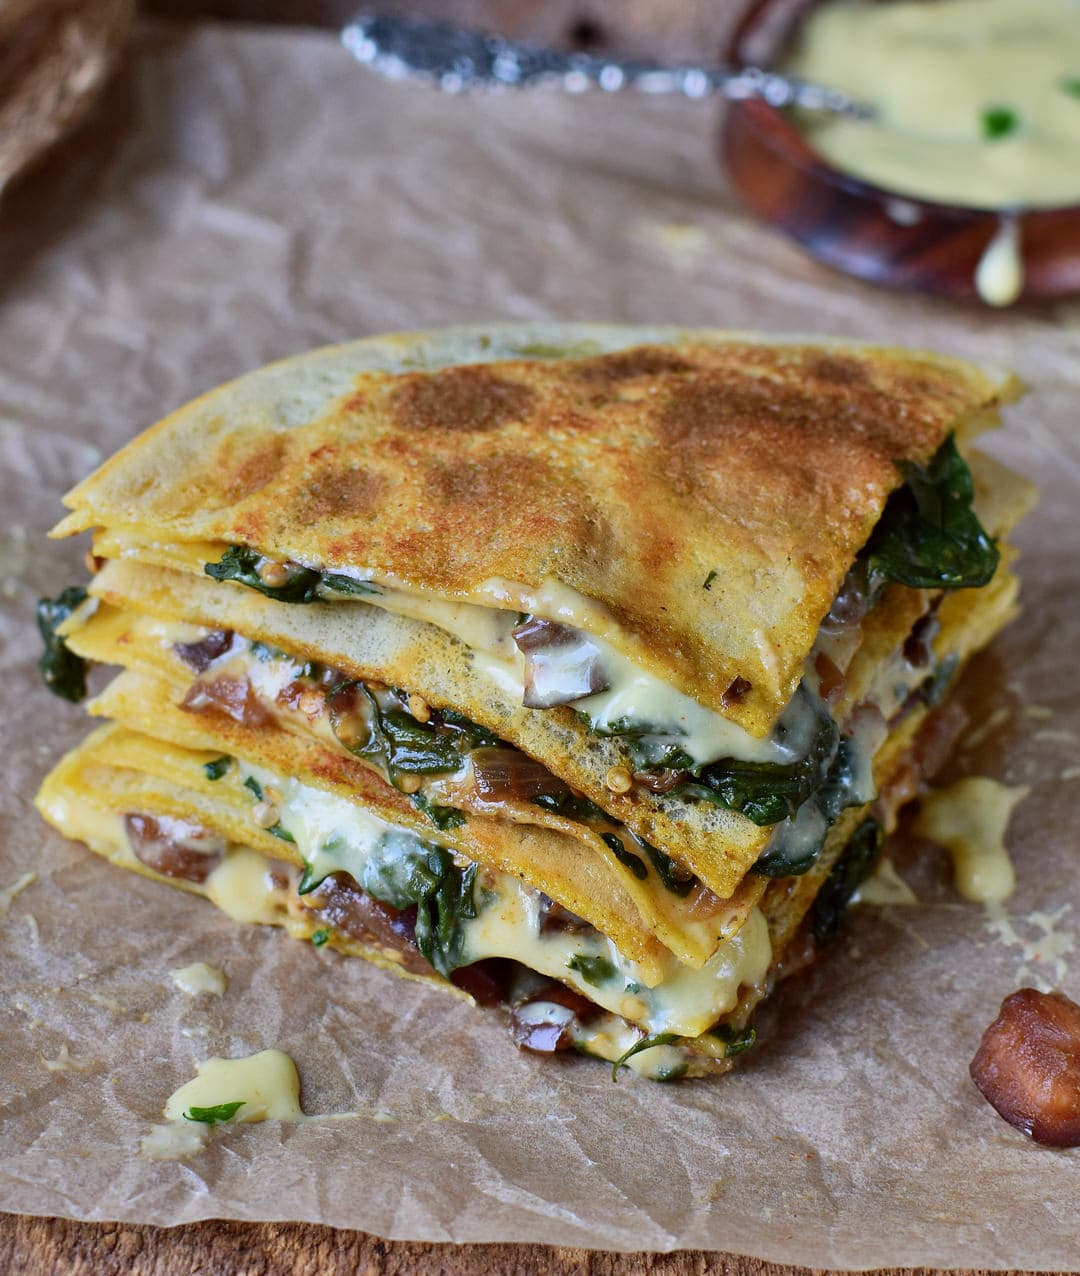 vegan spinach quesadillas with eggplant and gluten free tortillas